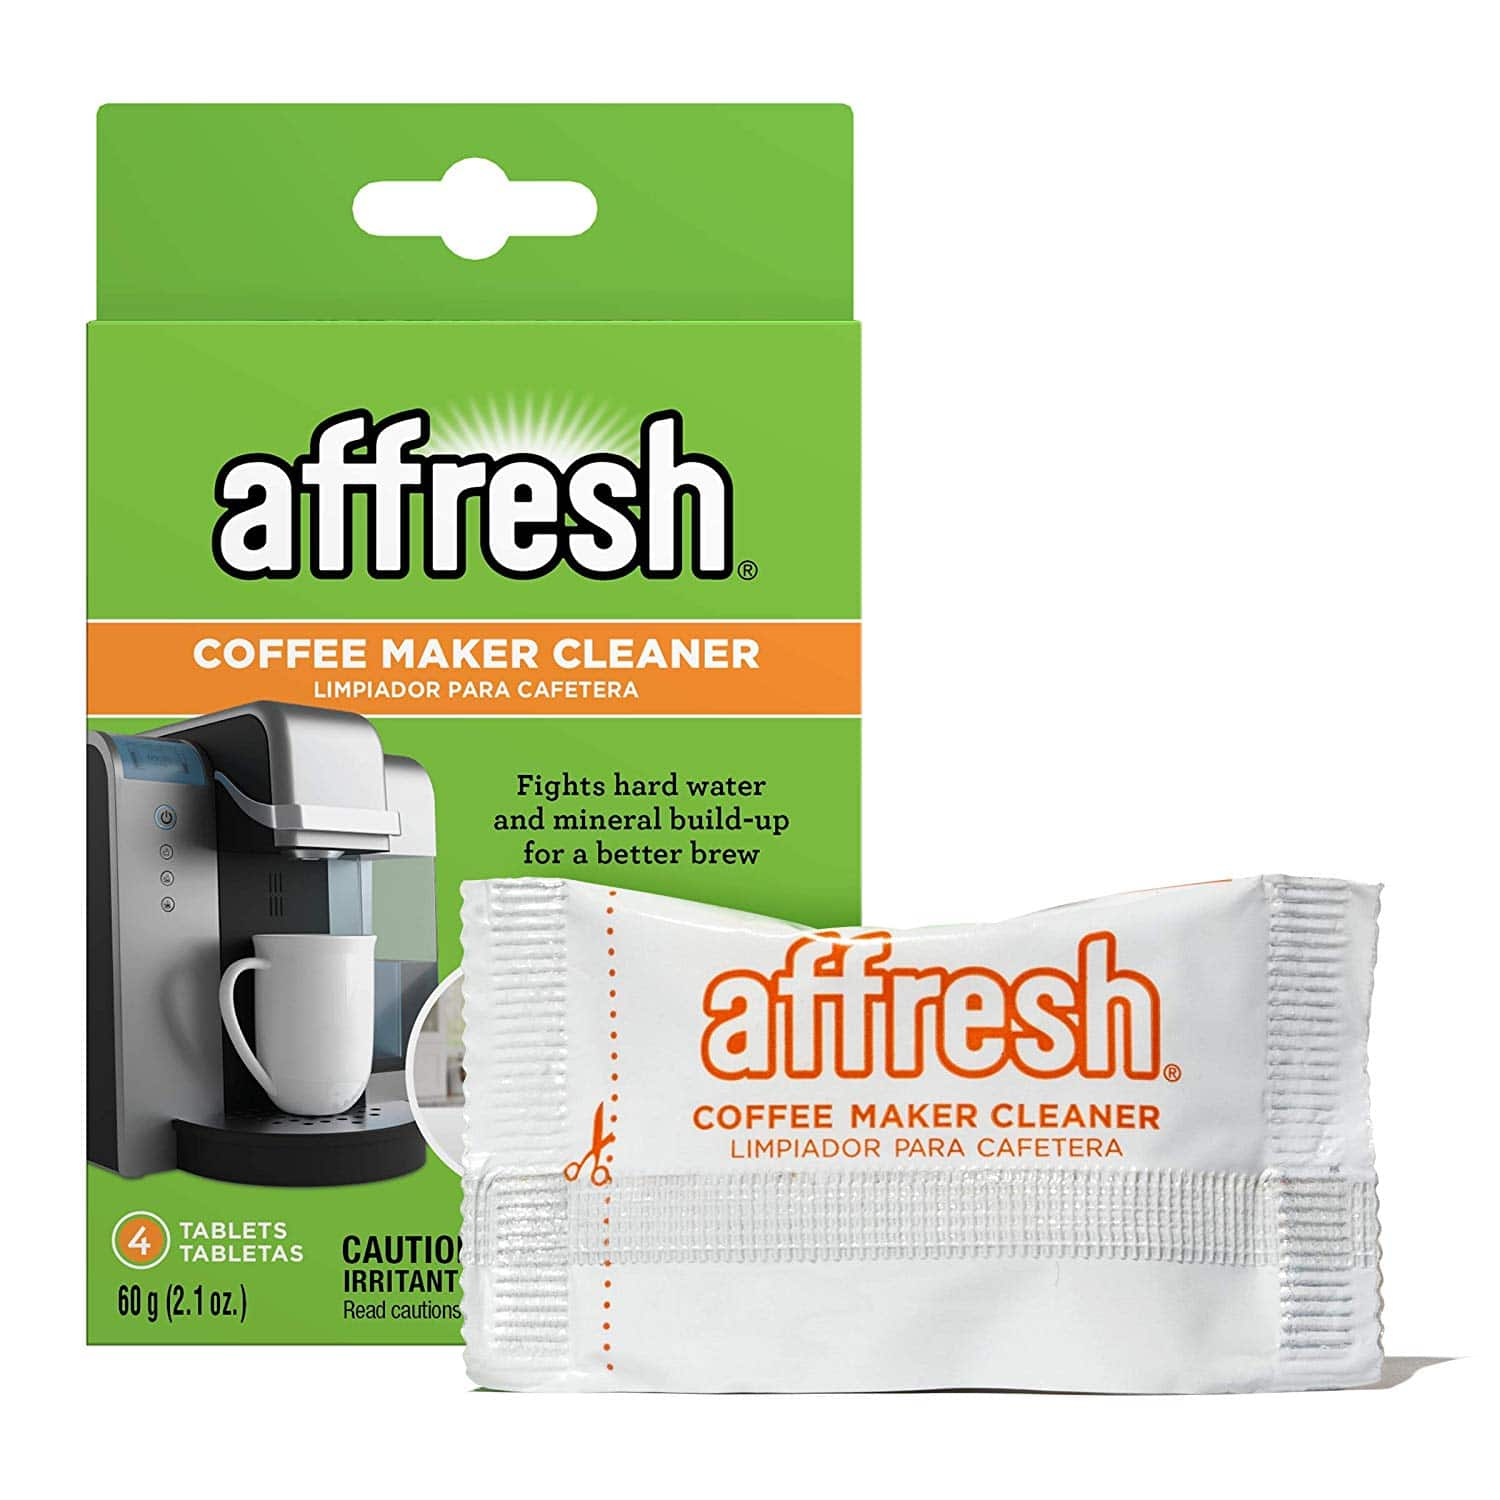 Affresh Coffeemaker Cleaner - 4 Tablets Add-On Item $4.99